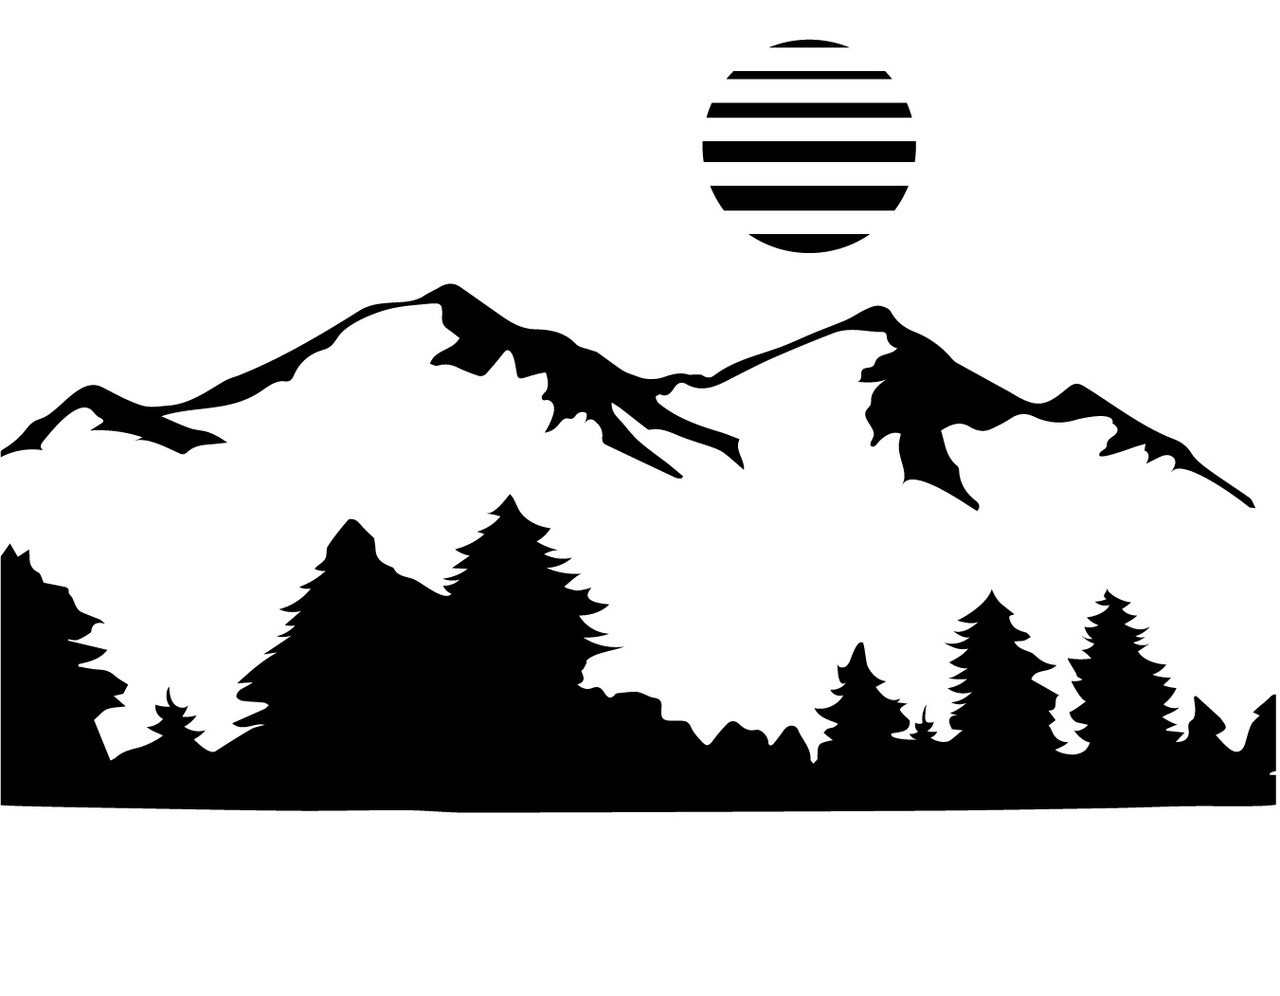 Mountain clipart mountain scenery. Drawing free download best